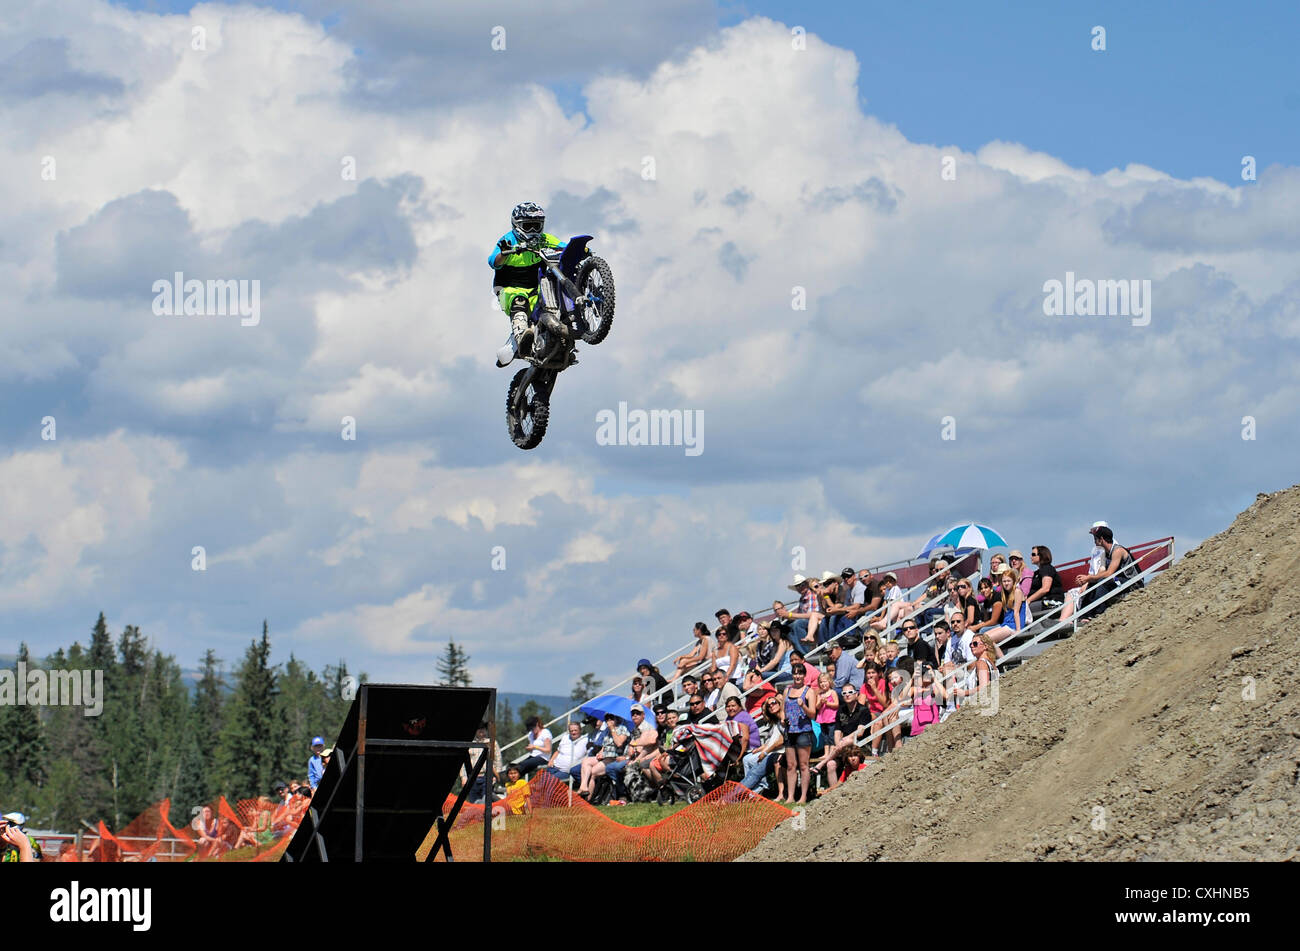 A motocross rider preforming an aerial stunt - Stock Image